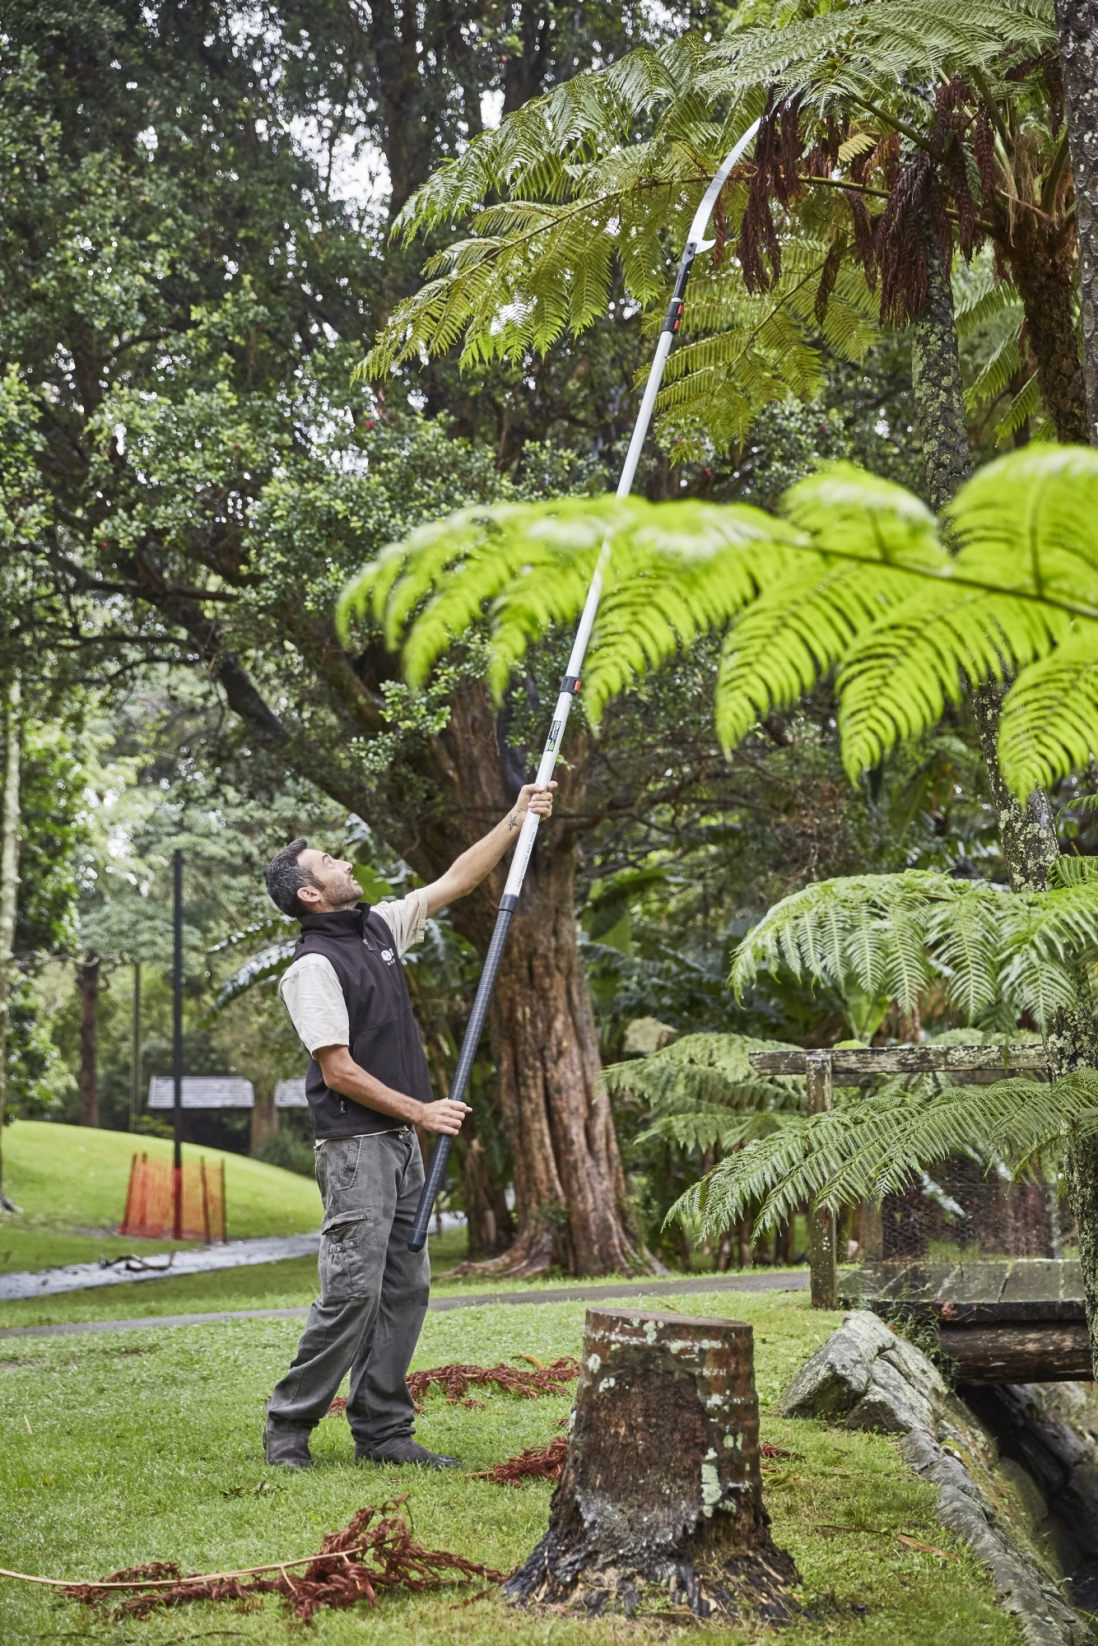 Horticulturist Leigh removing dead fronds with a pole pruner